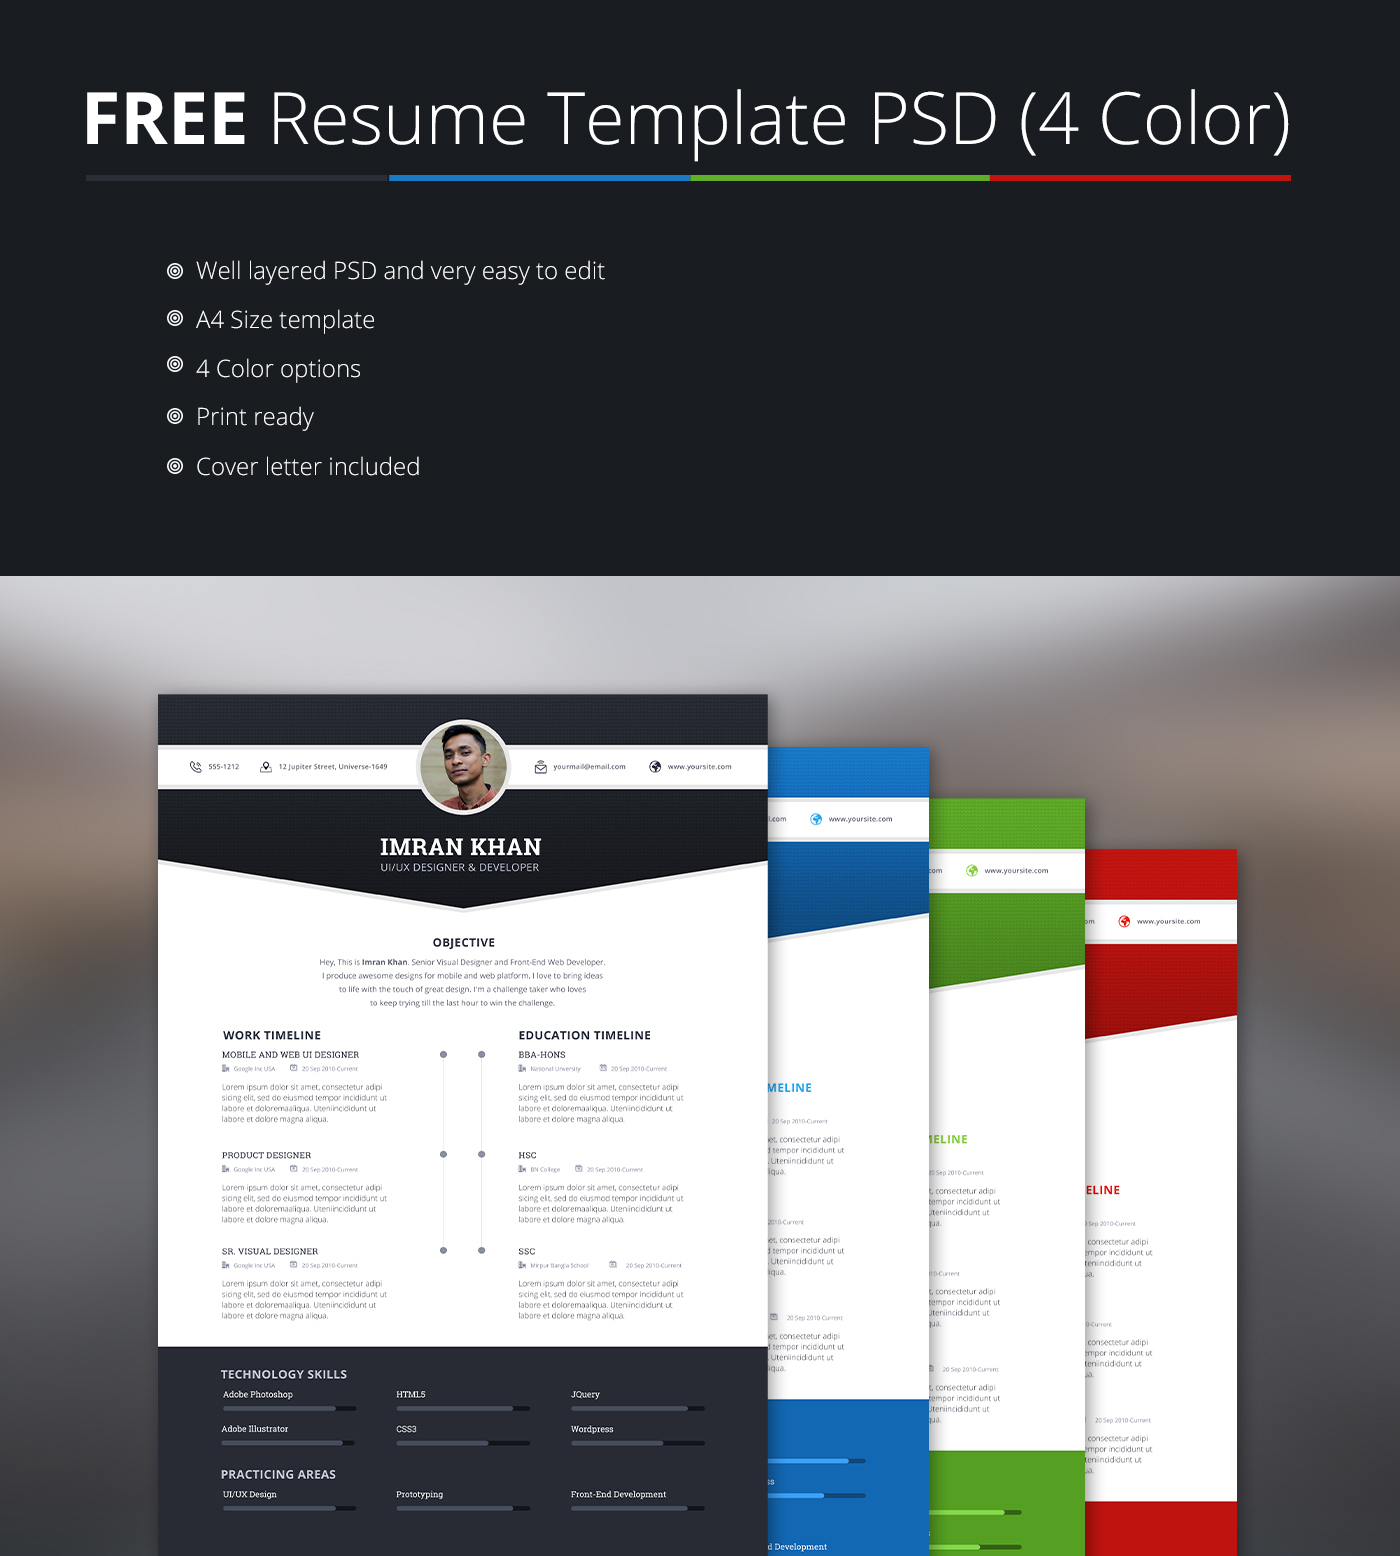 Ordinaire FREE Resume Template PSD (4 Colors) On Behance